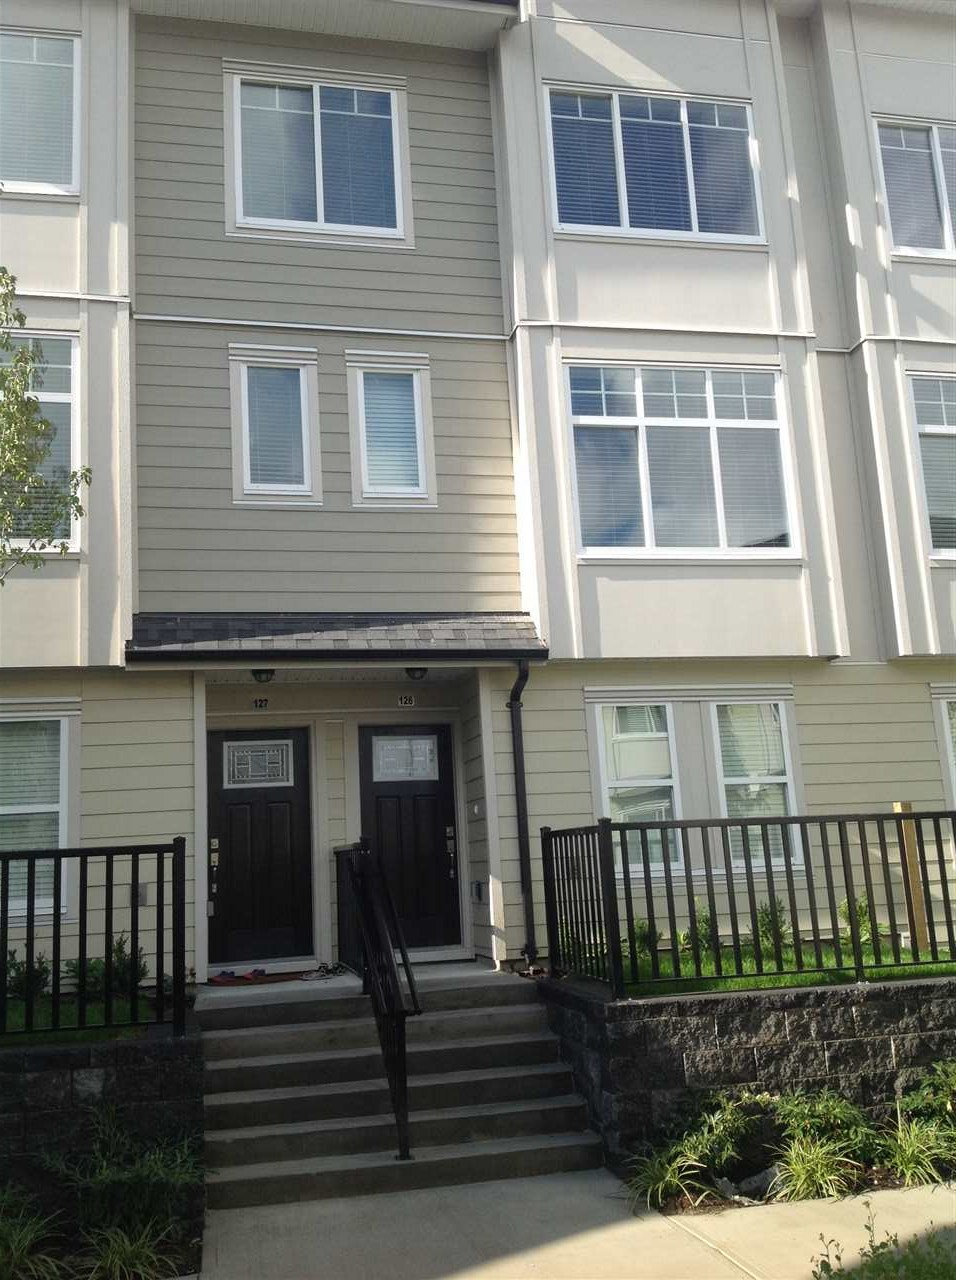 """Brand New - GST paid - townhouse 3 bedroom plus den on main 2.5 washroom- single garage plus carport expensive windows/quartz counter/crown molding and 9"""" ceiling. Quick access to HWY 10 and close to shopping/school/transit and park-1500 square feet/low strata fees if $173.00. OPEN HOUSE SAT 0CTOBER 21 FROM 2-4 ."""